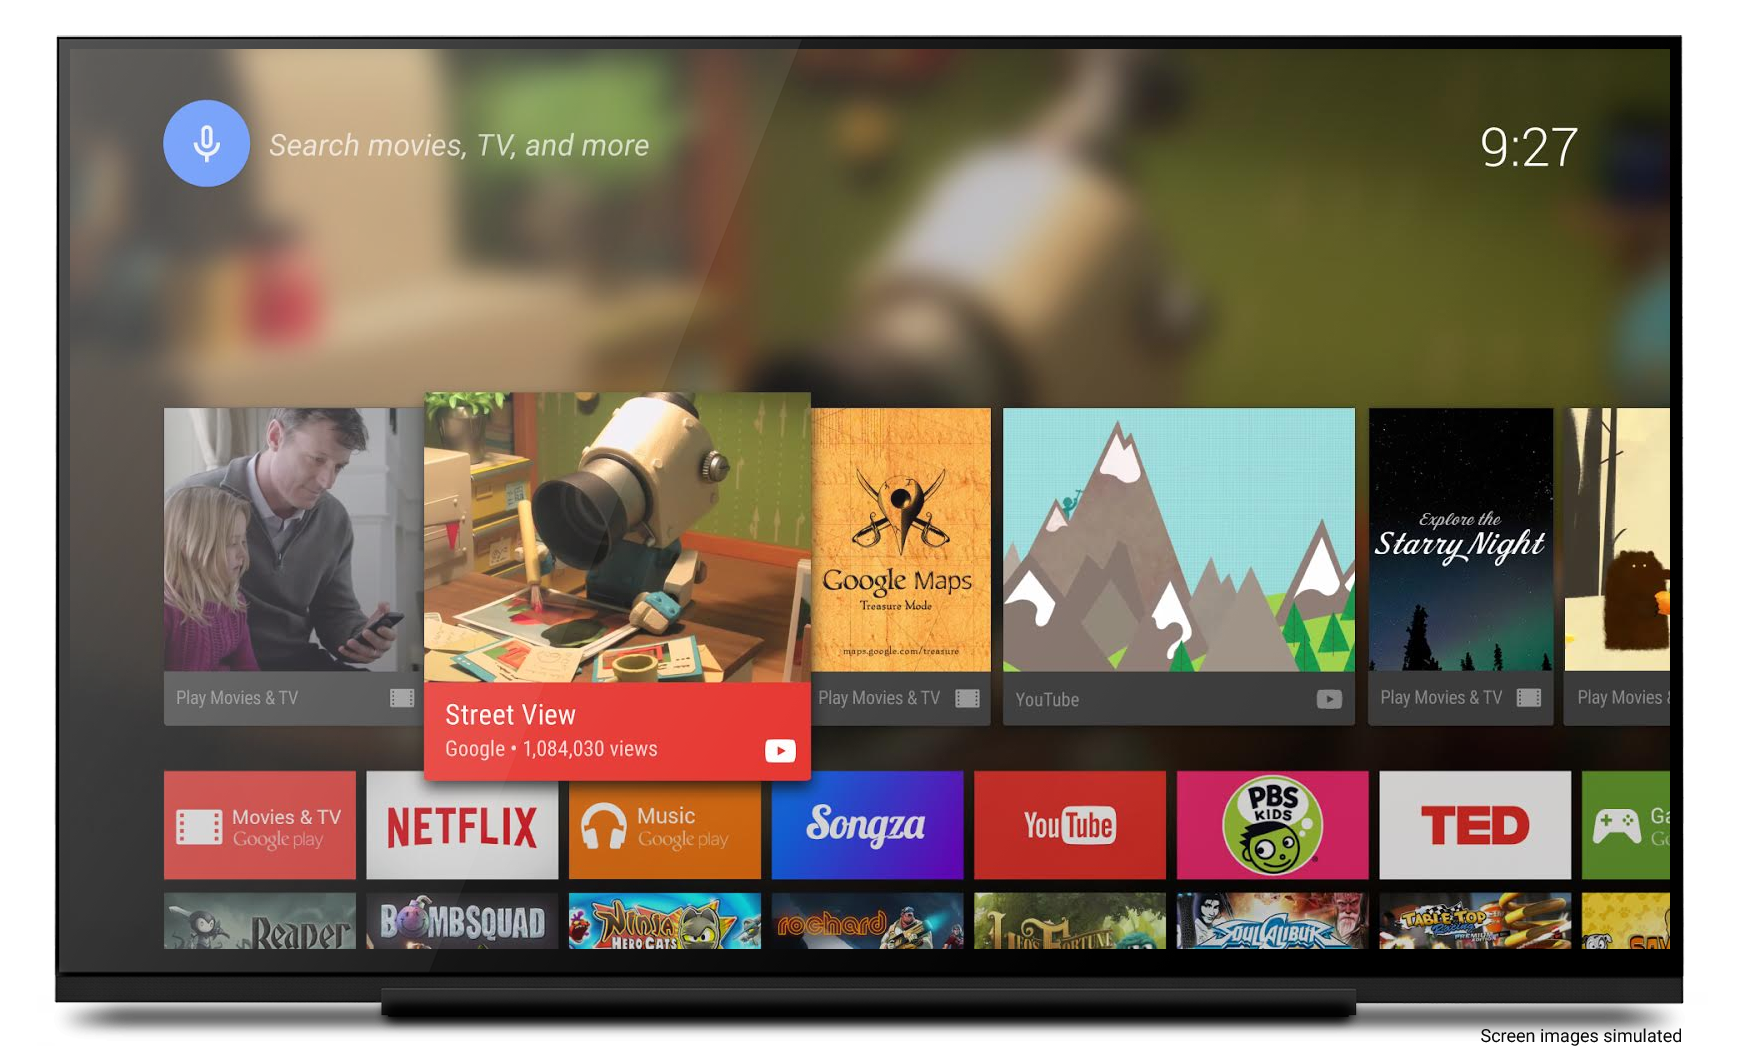 Android TV Receives a Huge UI Overhaul